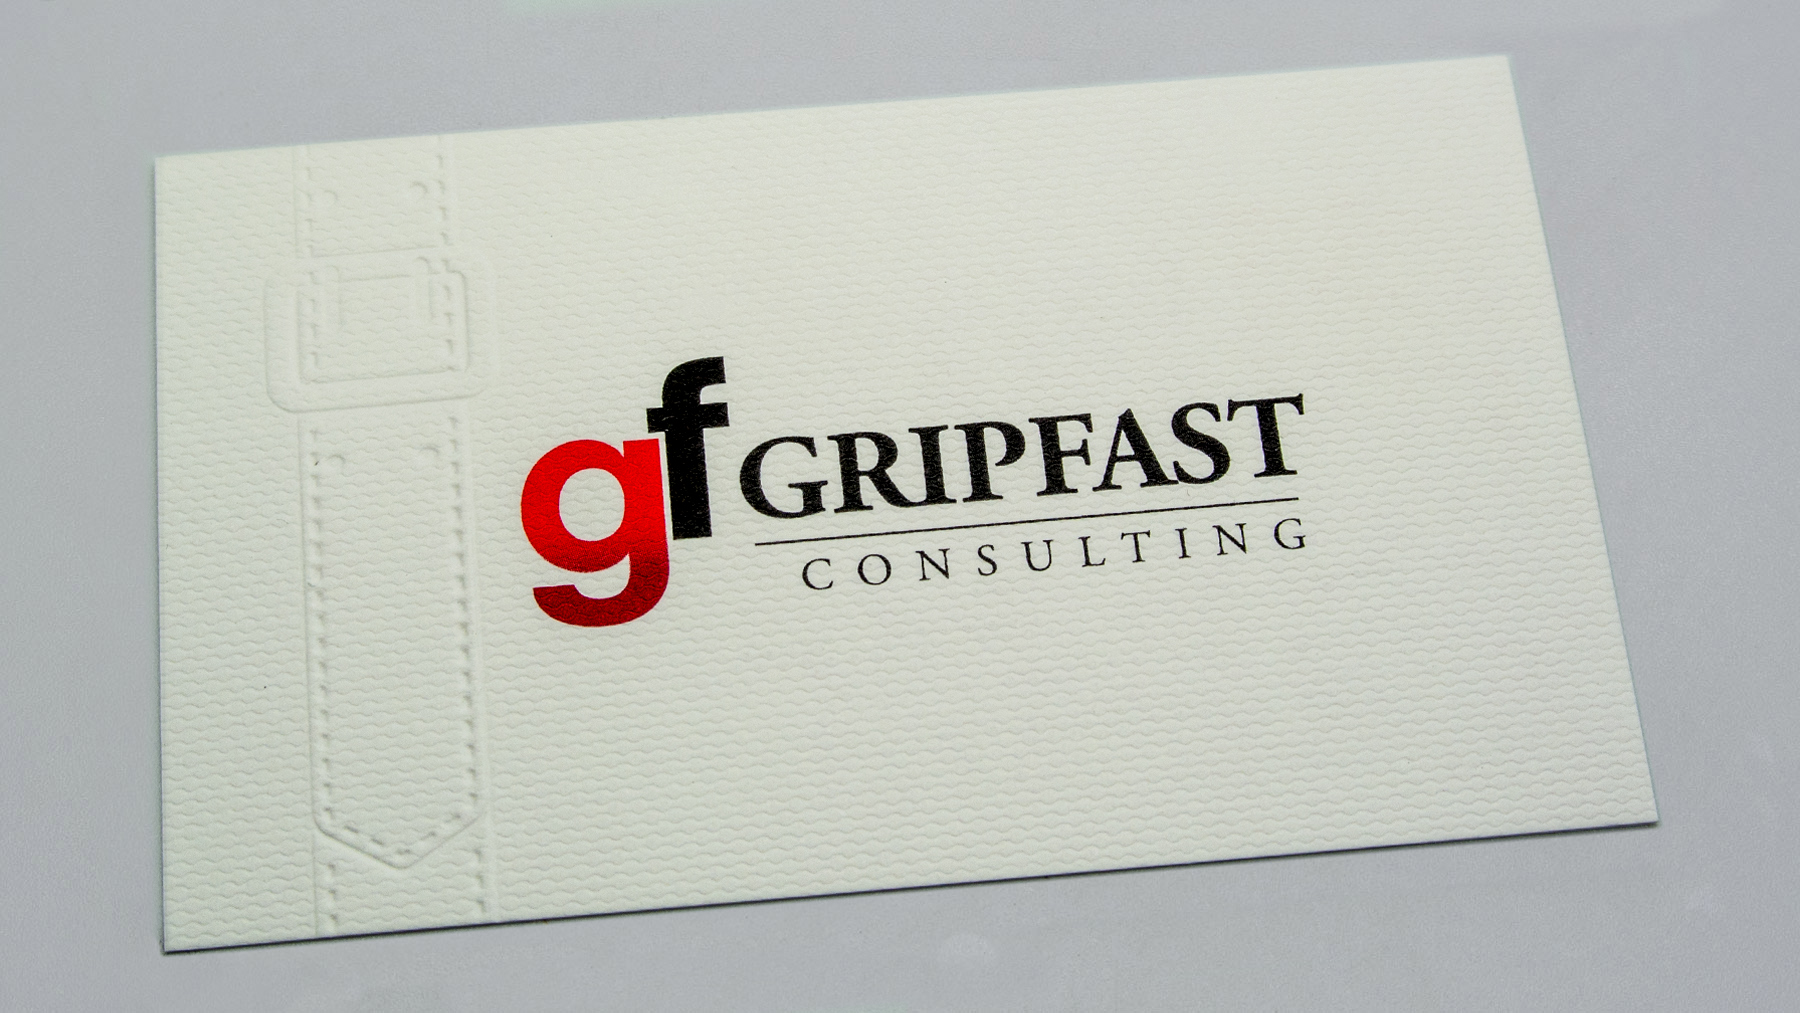 Business Cards Newcastle Australia Images - Card Design And Card ...